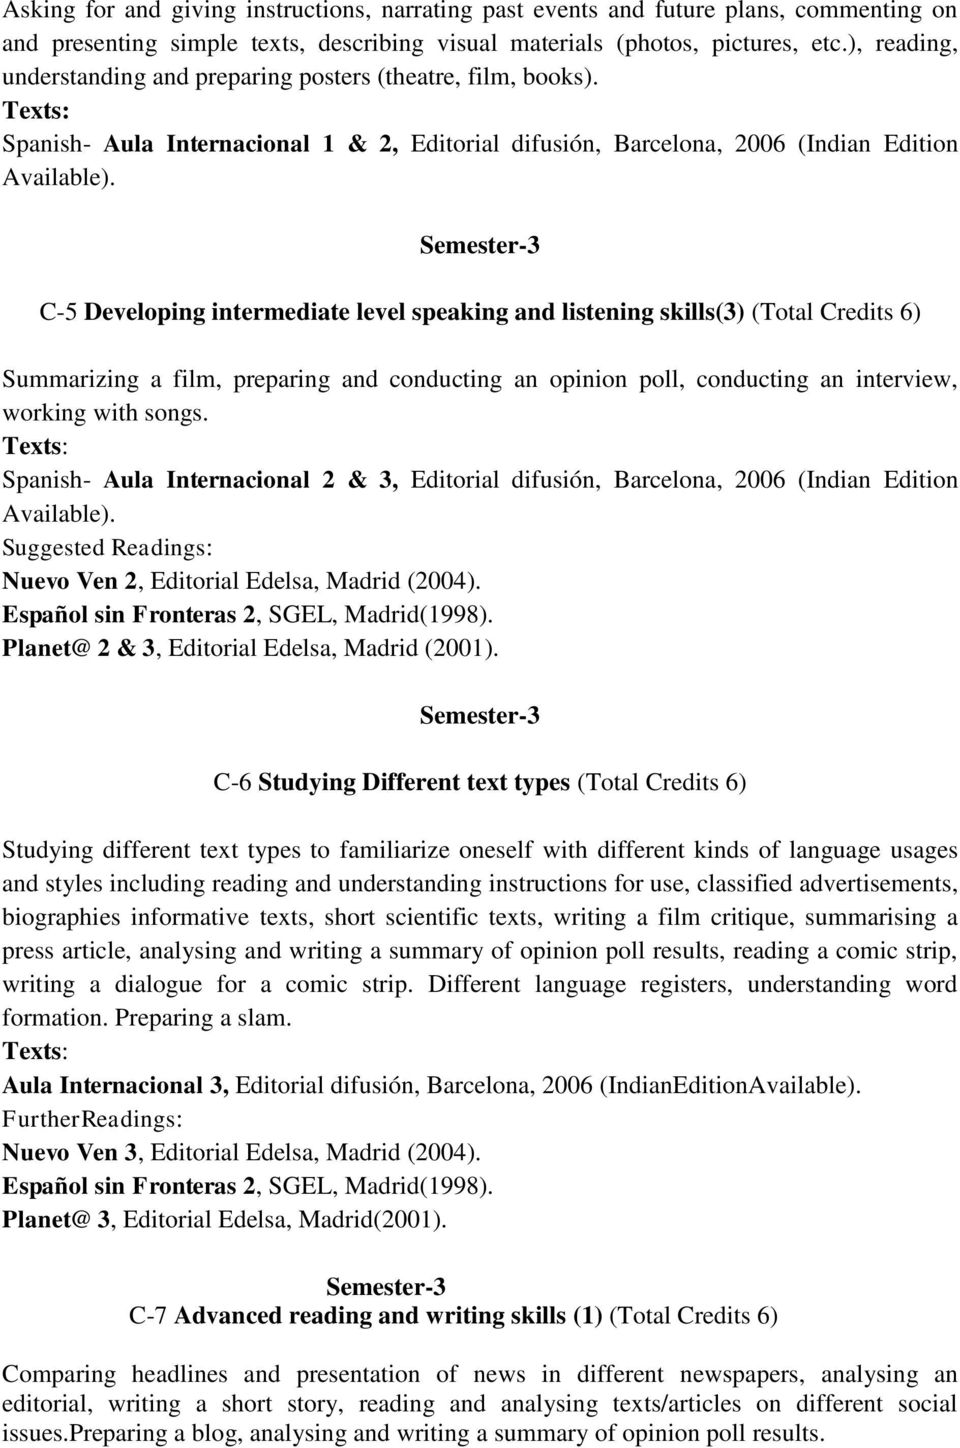 Semester-3 C-5 Developing intermediate level speaking and listening skills(3) (Total Credits 6) Summarizing a film, preparing and conducting an opinion poll, conducting an interview, working with